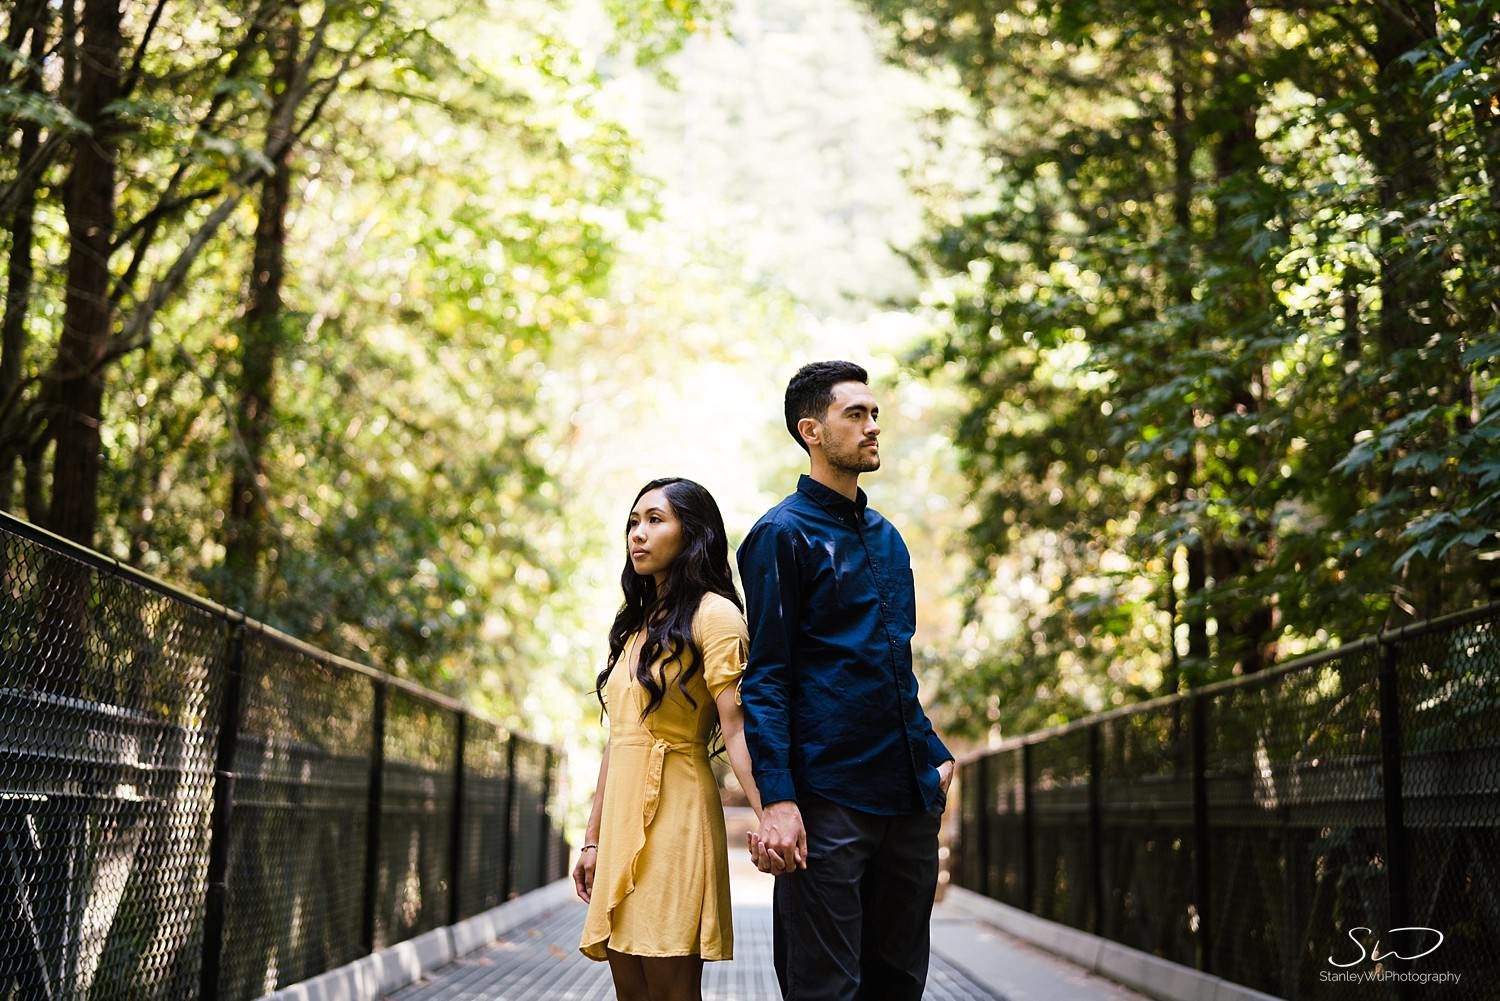 big-sur-travel-adventure-engagement-session_0007.jpg